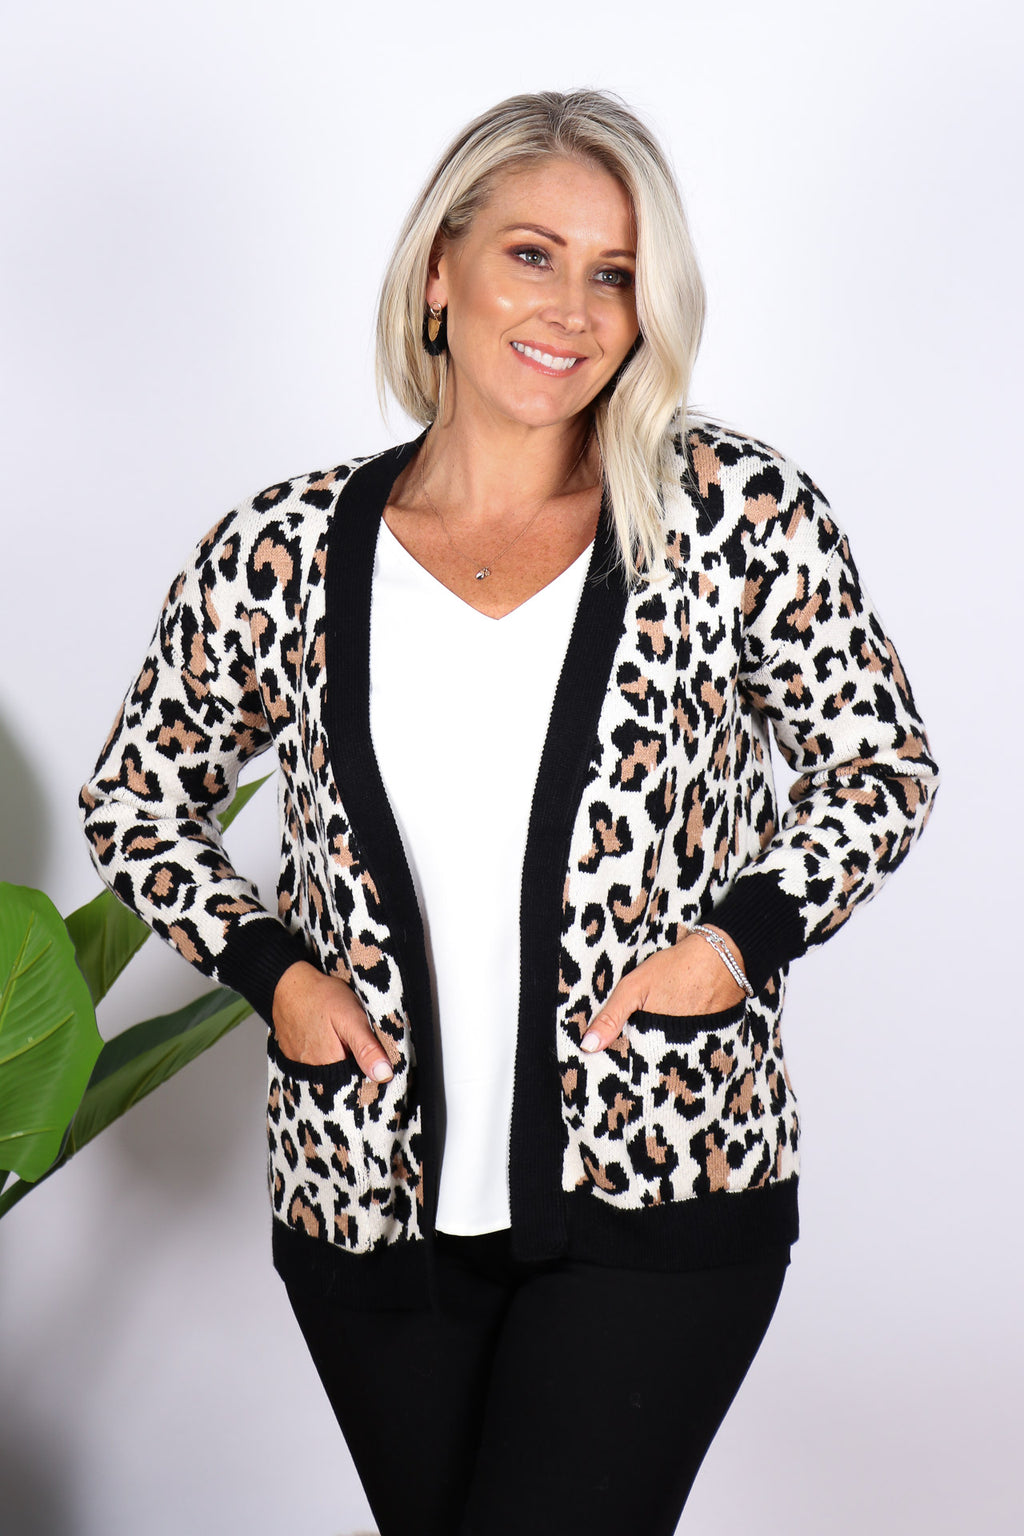 Ellis Animal Cardi in Cream